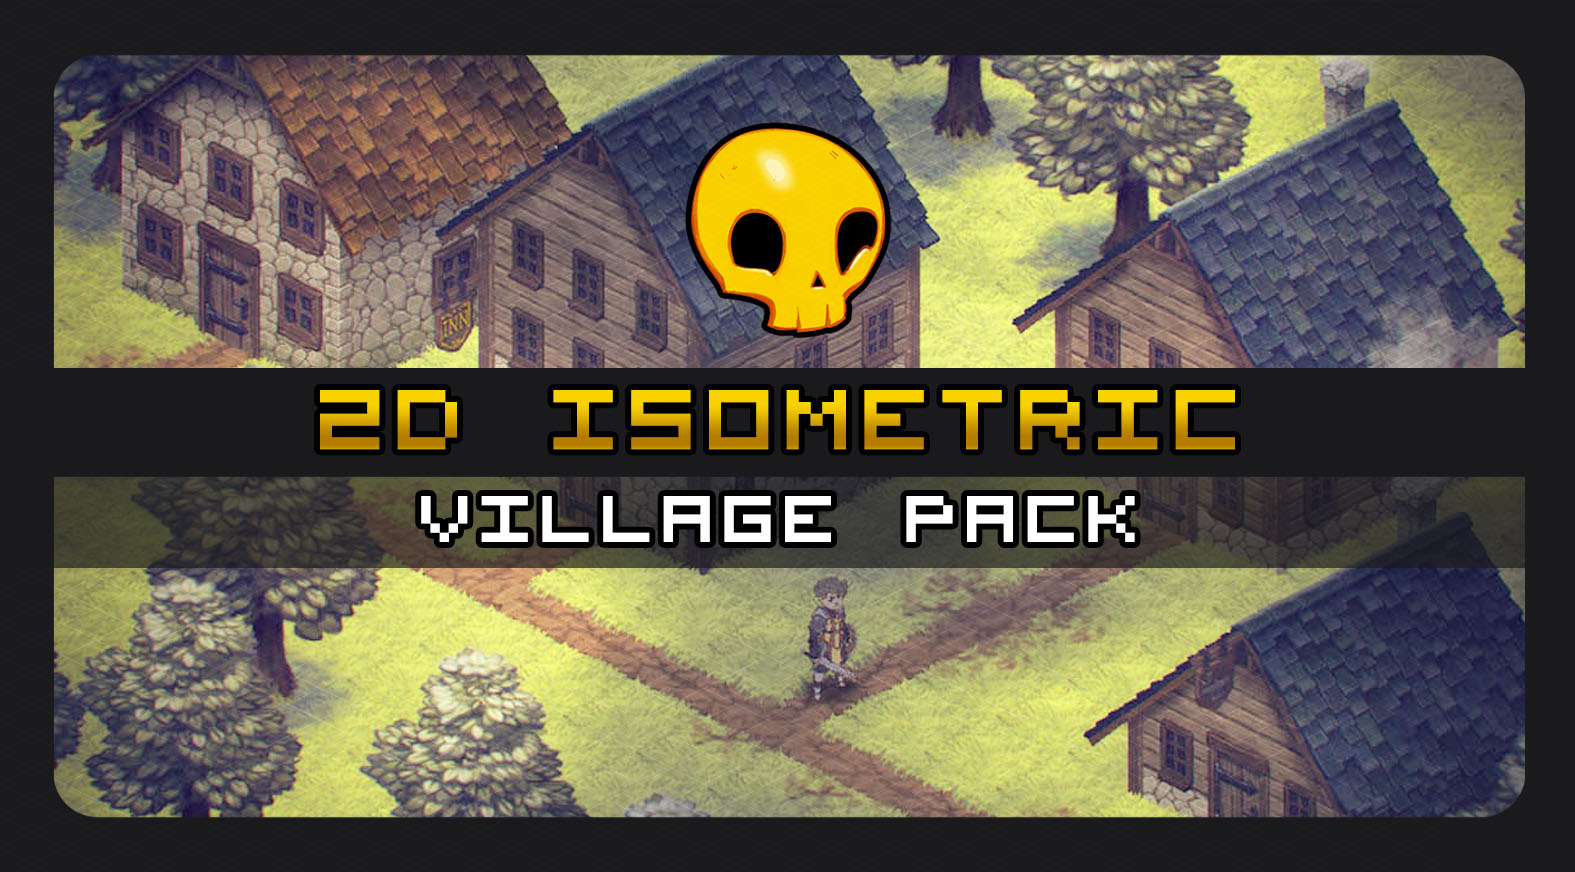 2D Isometric Village Tile Pack